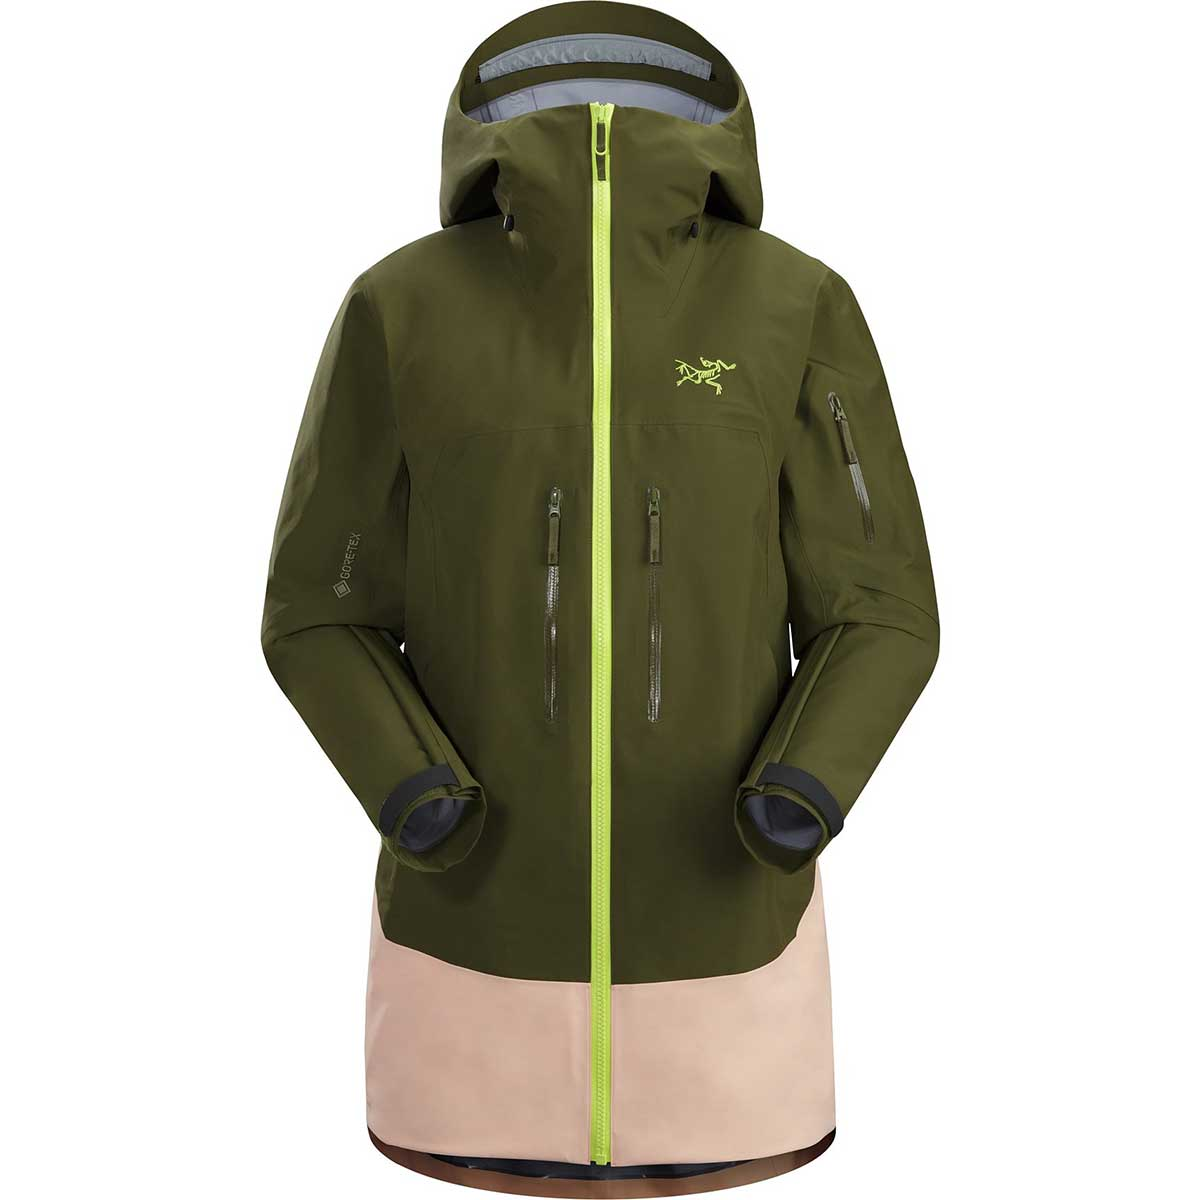 Arc'teryx Women's Sentinel LT Jacket in Treeline Tonic